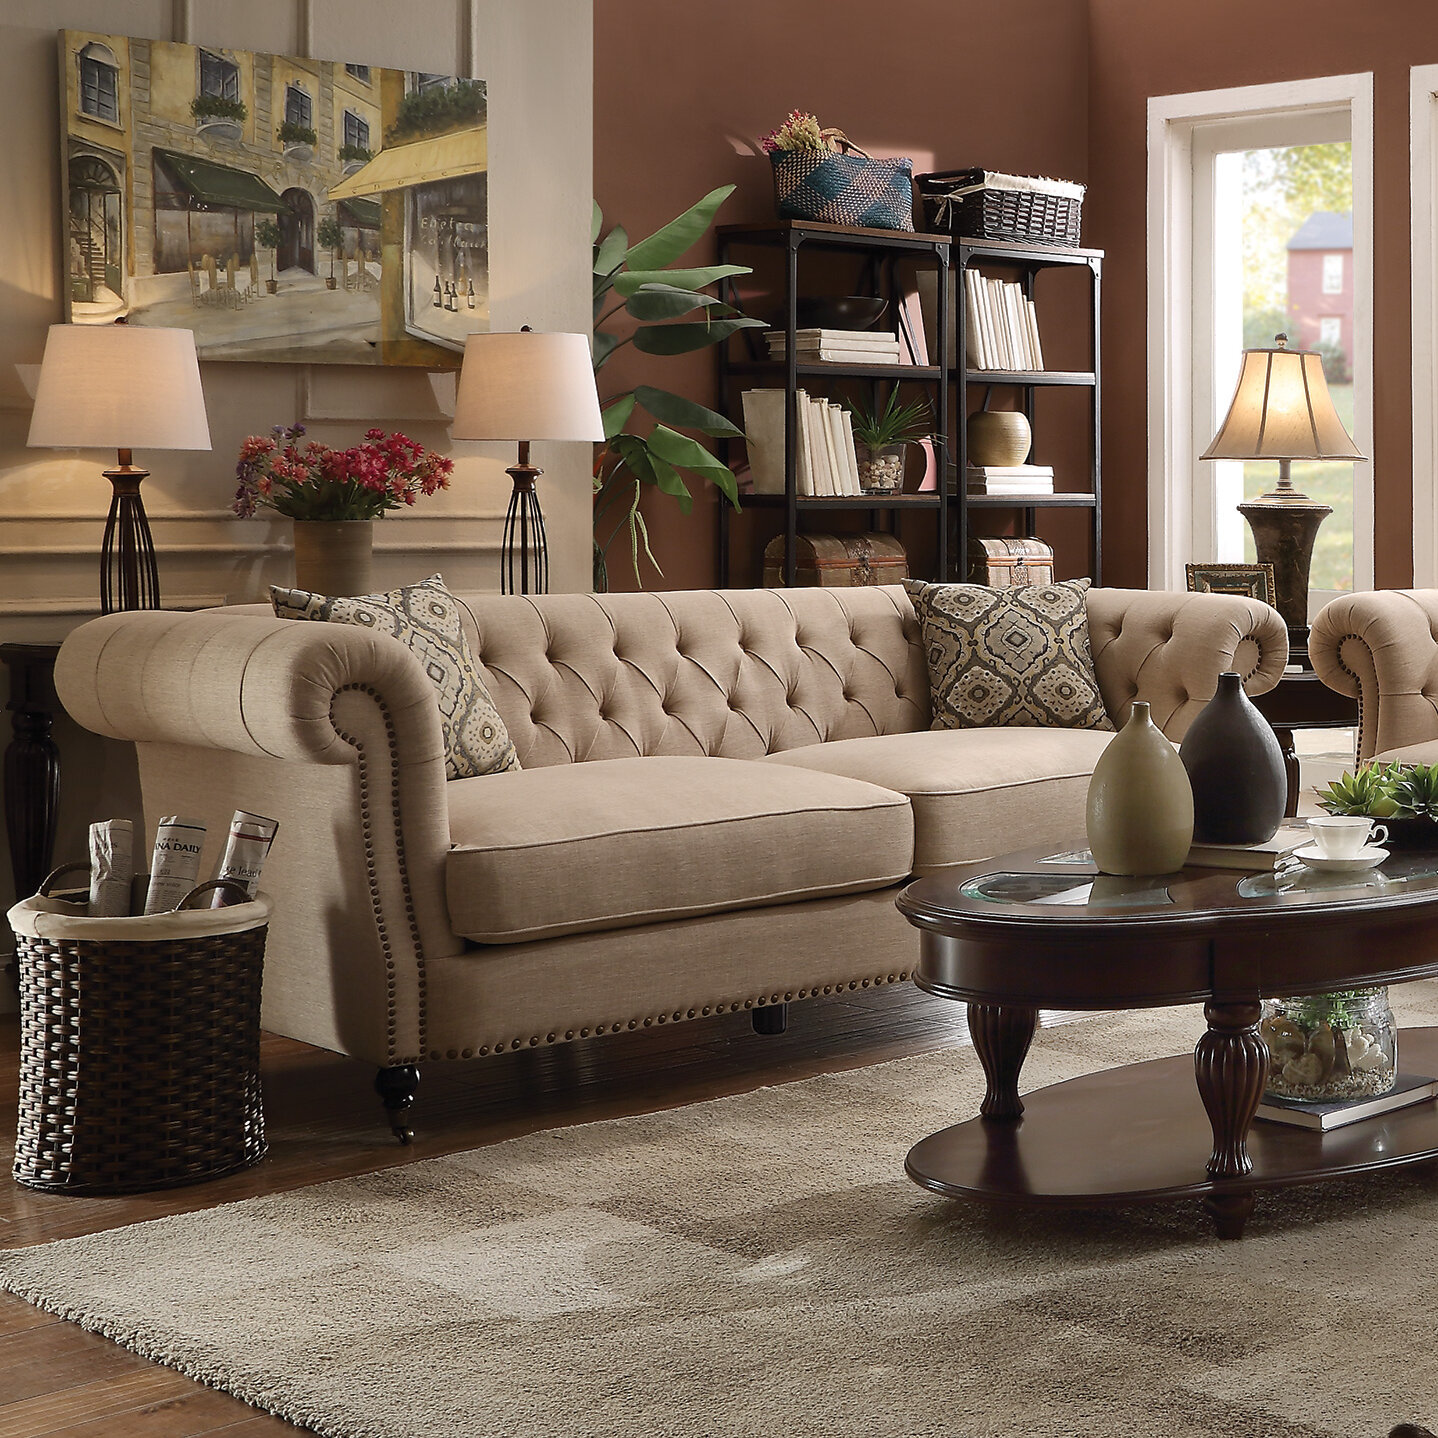 Darby Home Co Foreside Chesterfield Sofa & Reviews | Wayfair